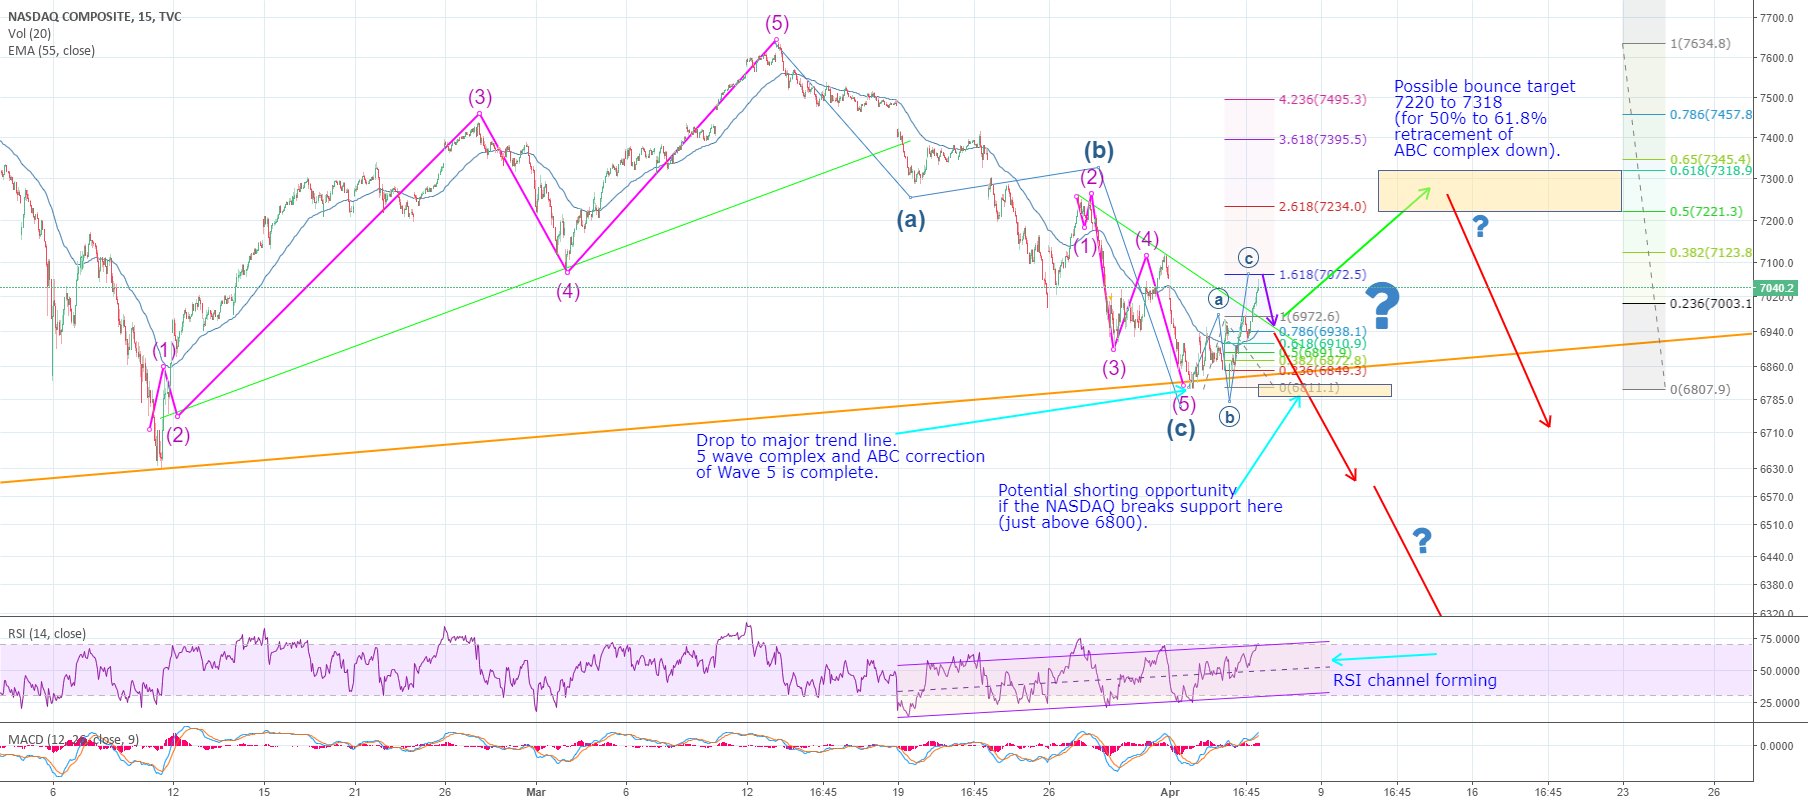 Next moves for NASDAQ (IXIC)? Bull/bear scenarios, bear emphasis